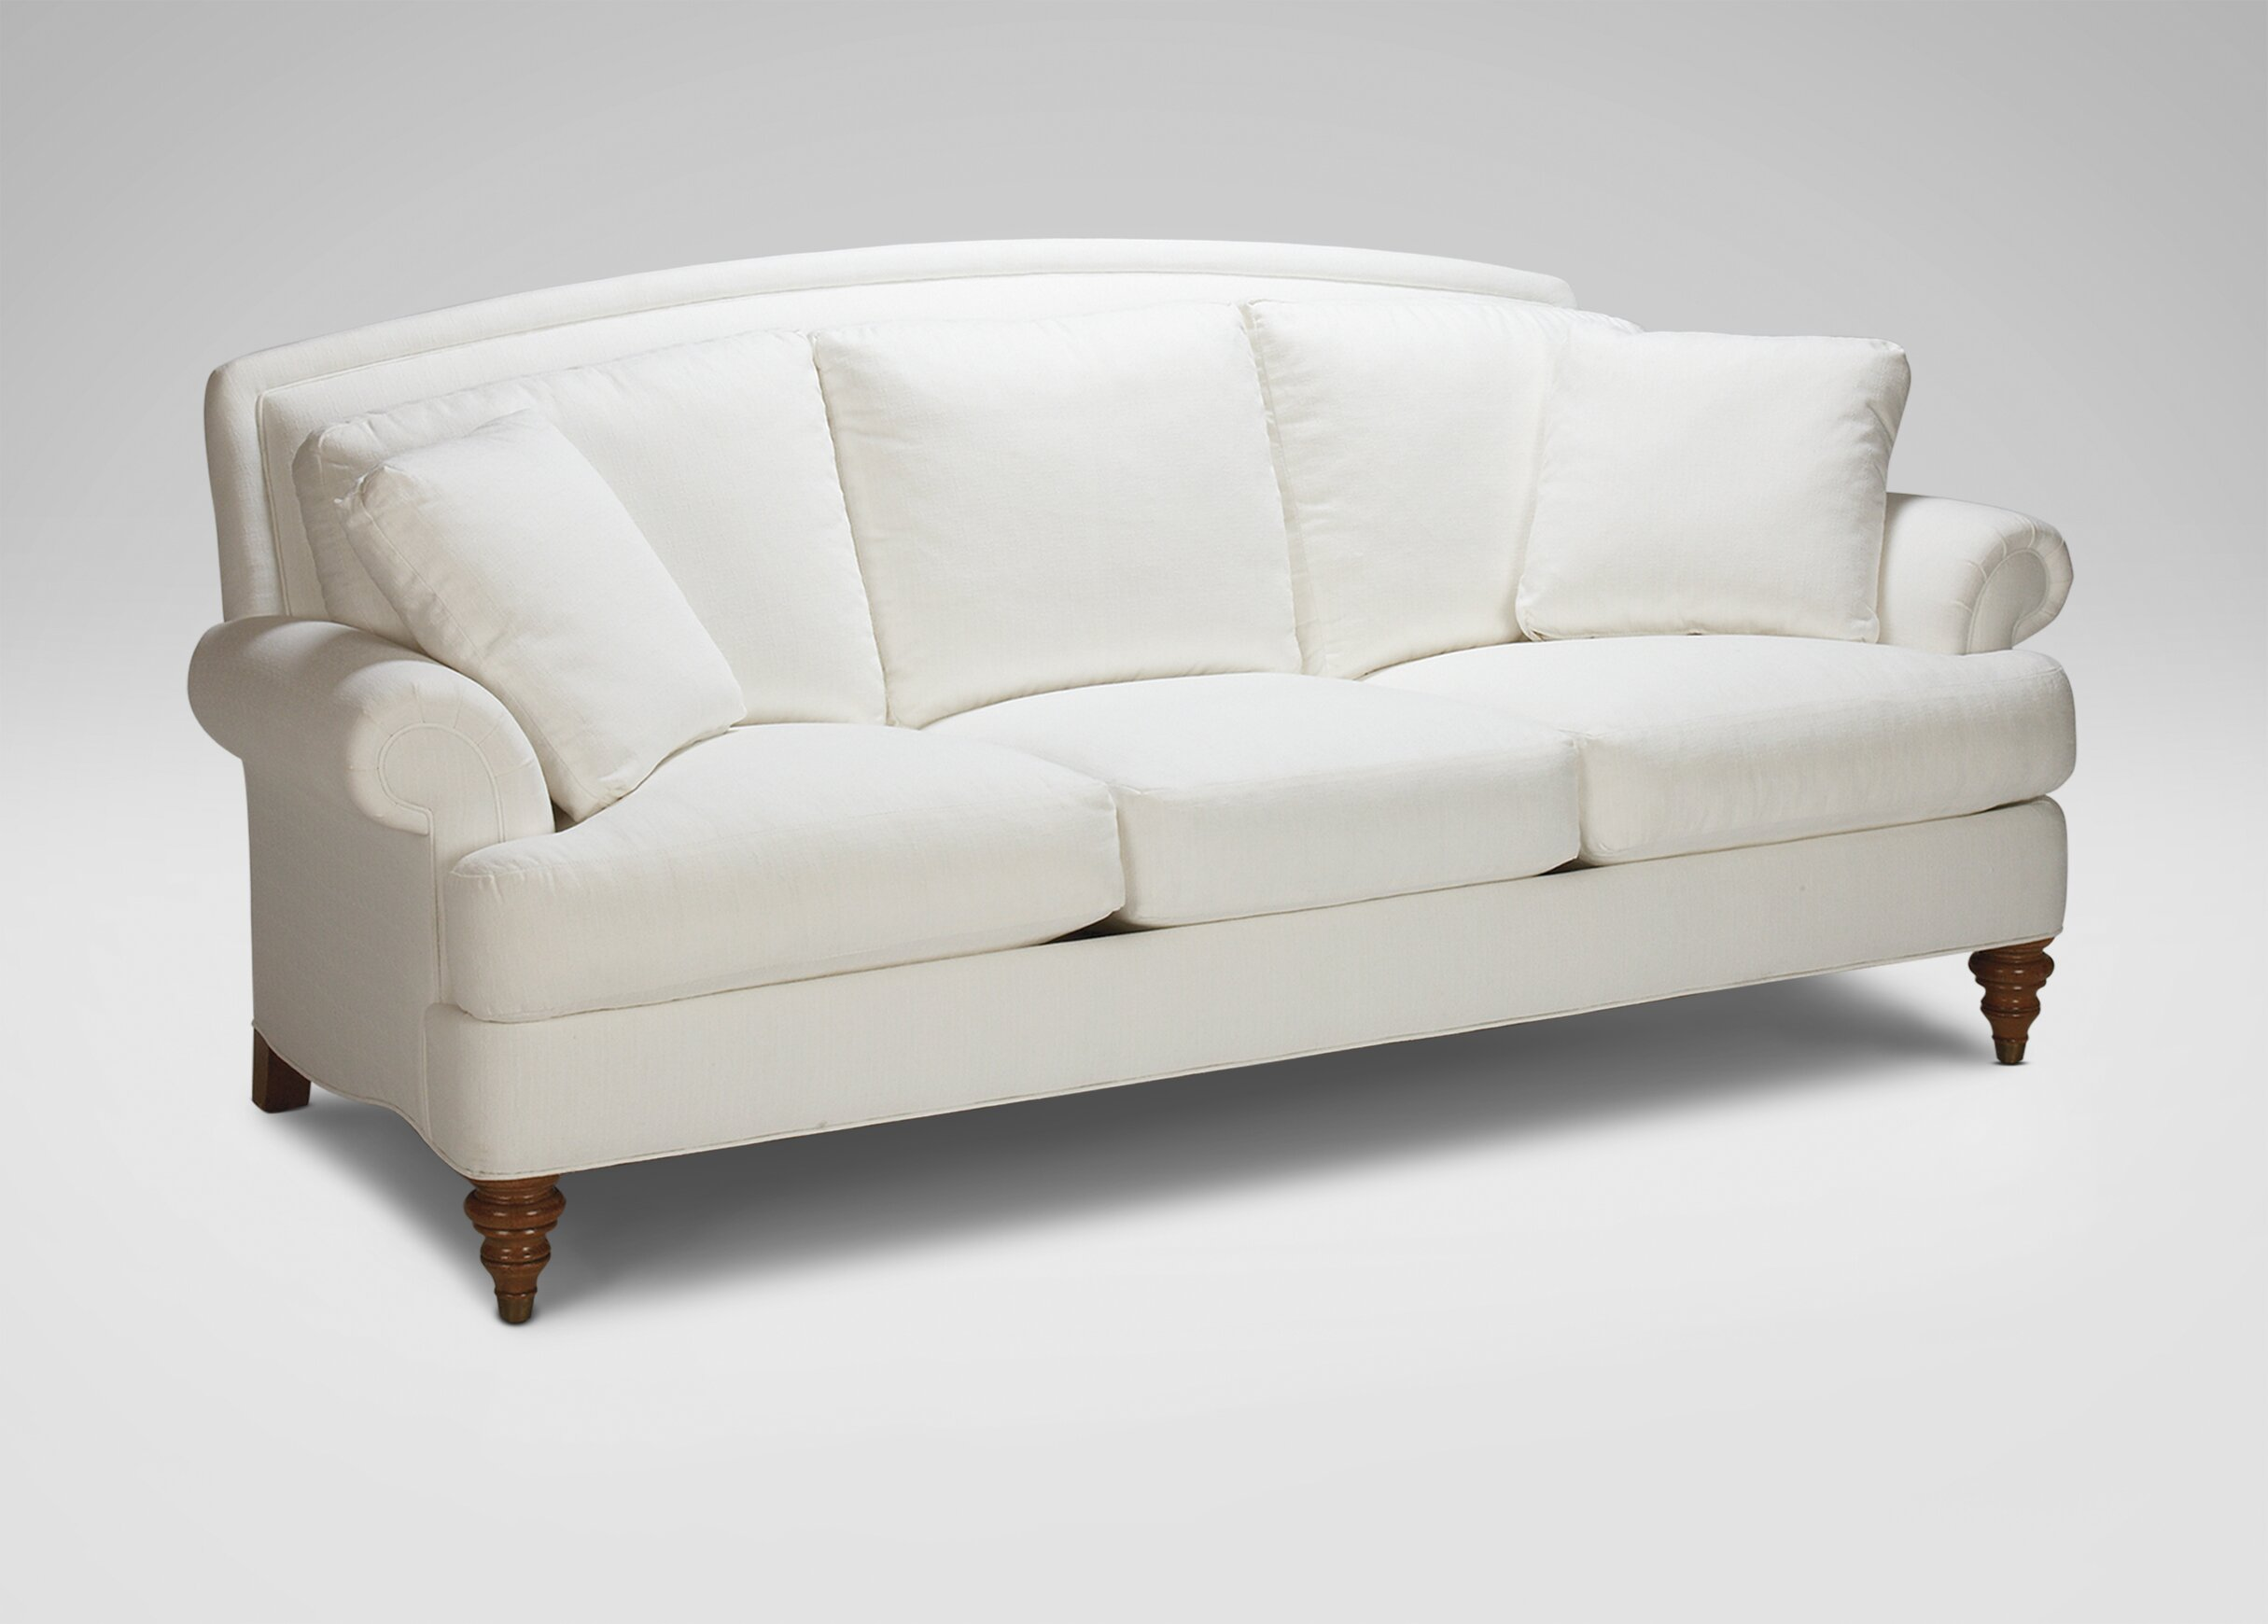 Ethan Allen Leather Couch | Ethan Allen Retreat Sofa Reviews | Quality of Ethan Allen Furniture : ethan allen leather recliner chairs - islam-shia.org